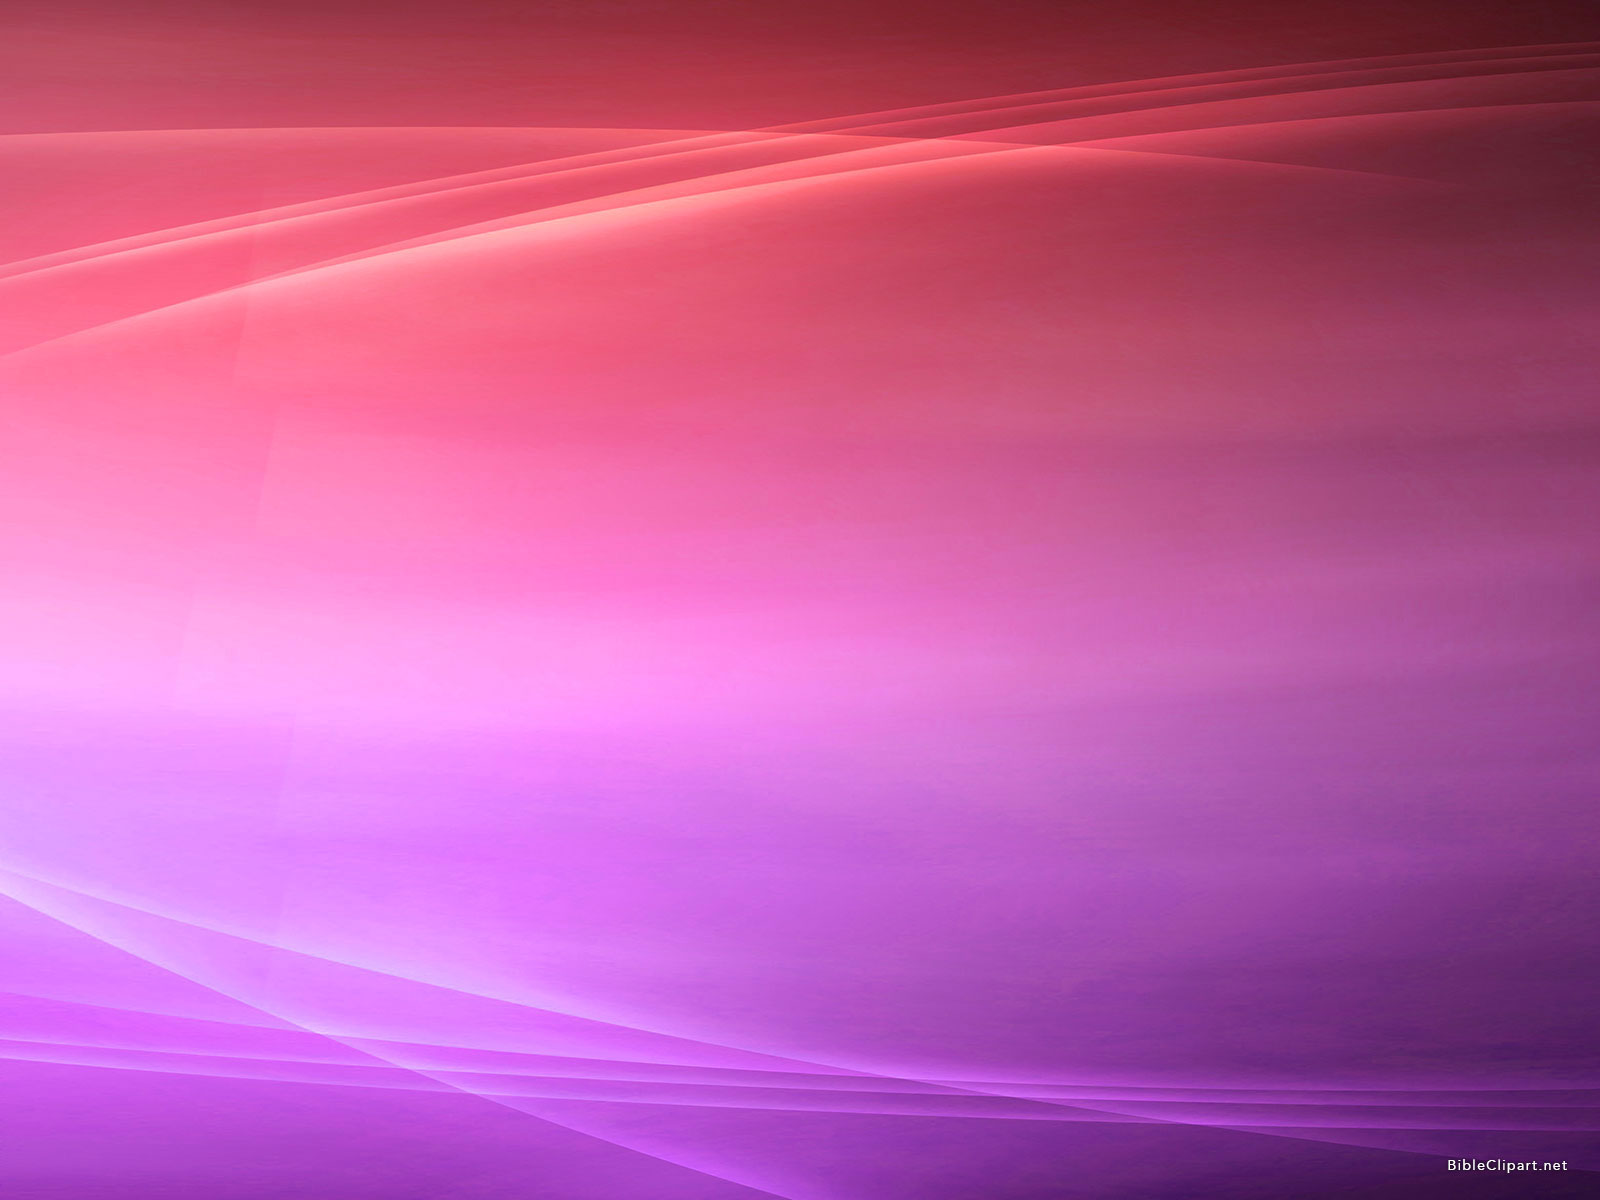 Red purple gradient. Background clipart bible